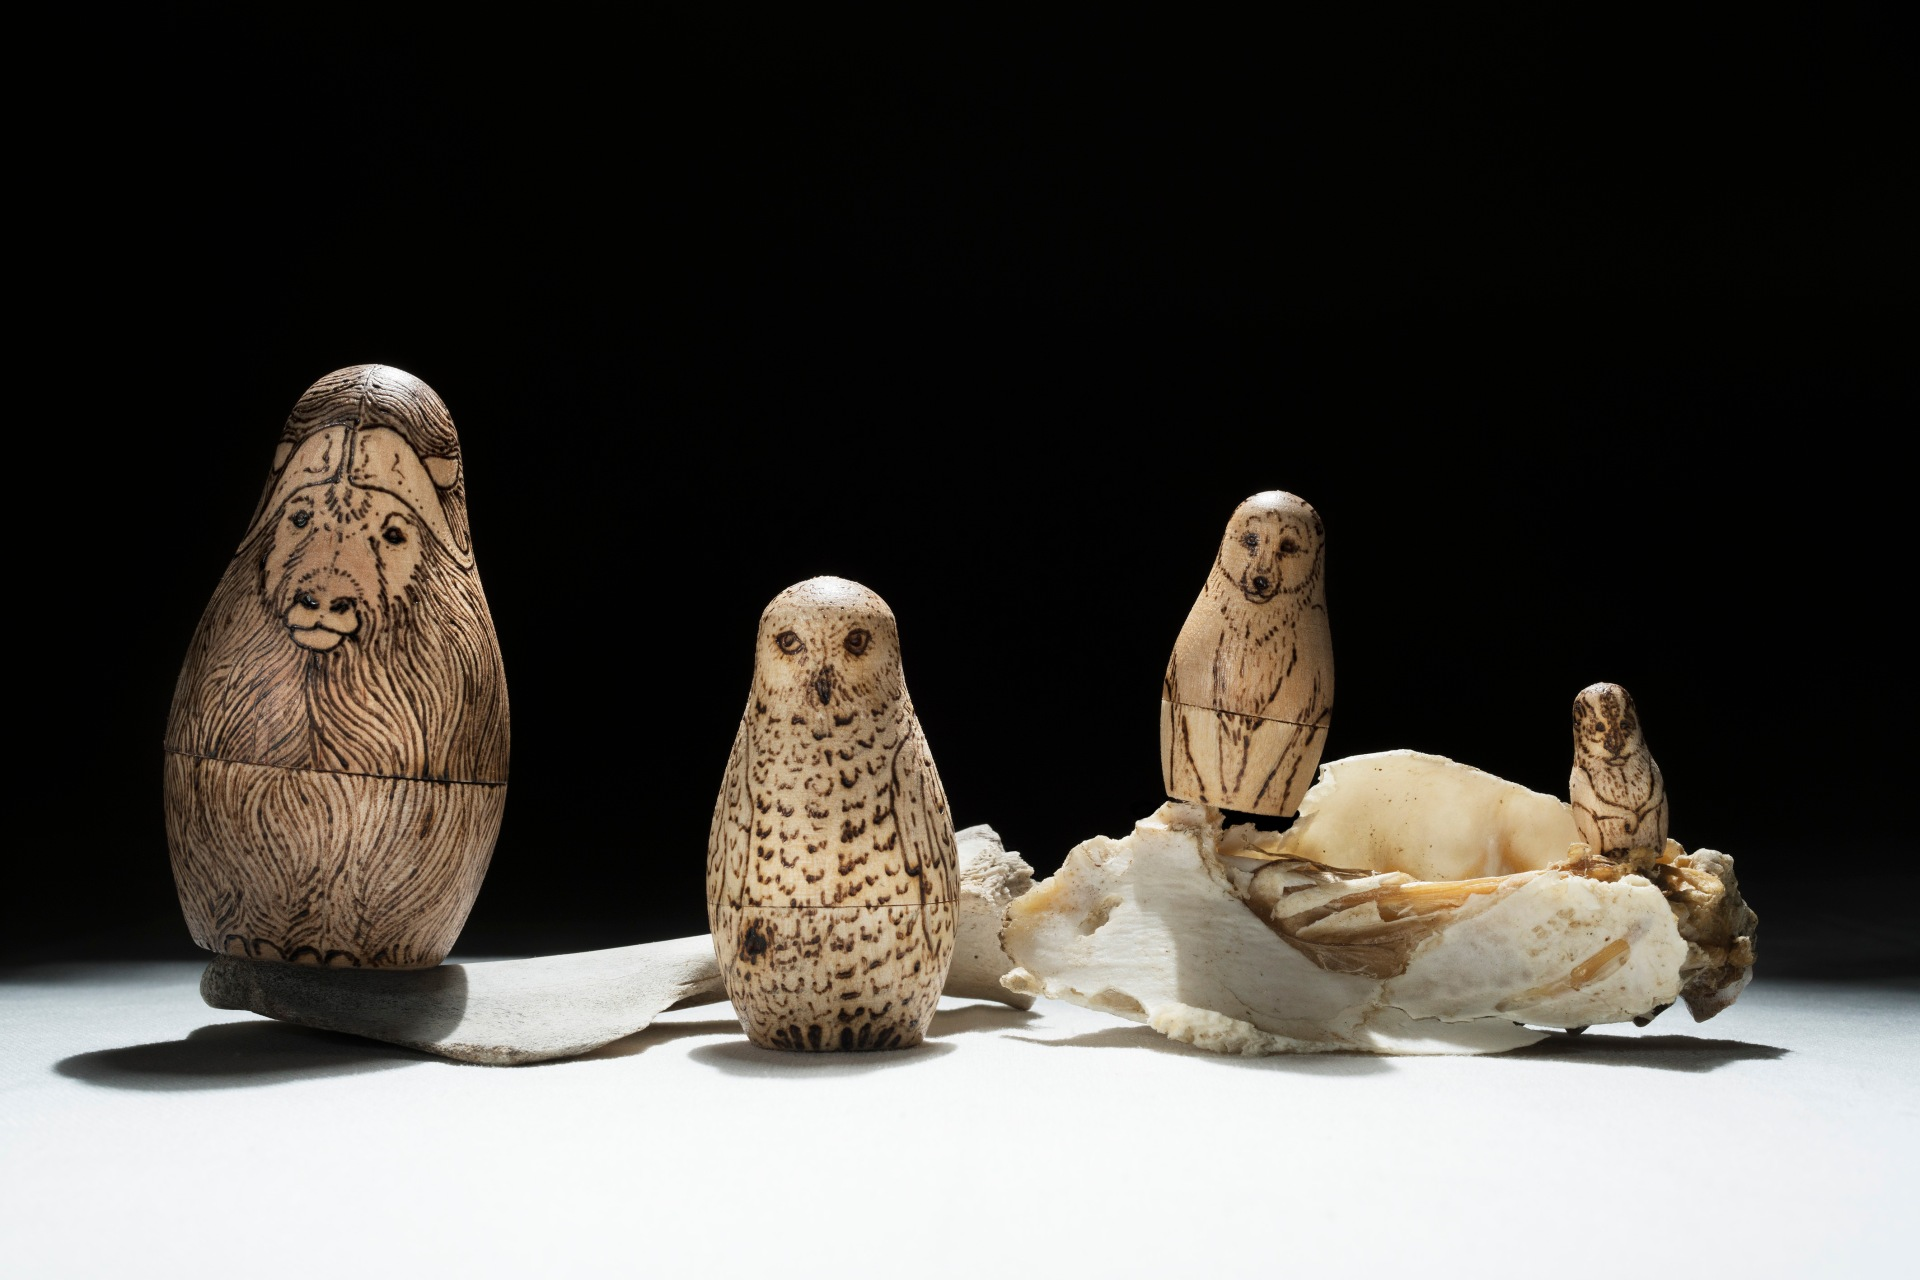 wood-burning-nesting-dolls